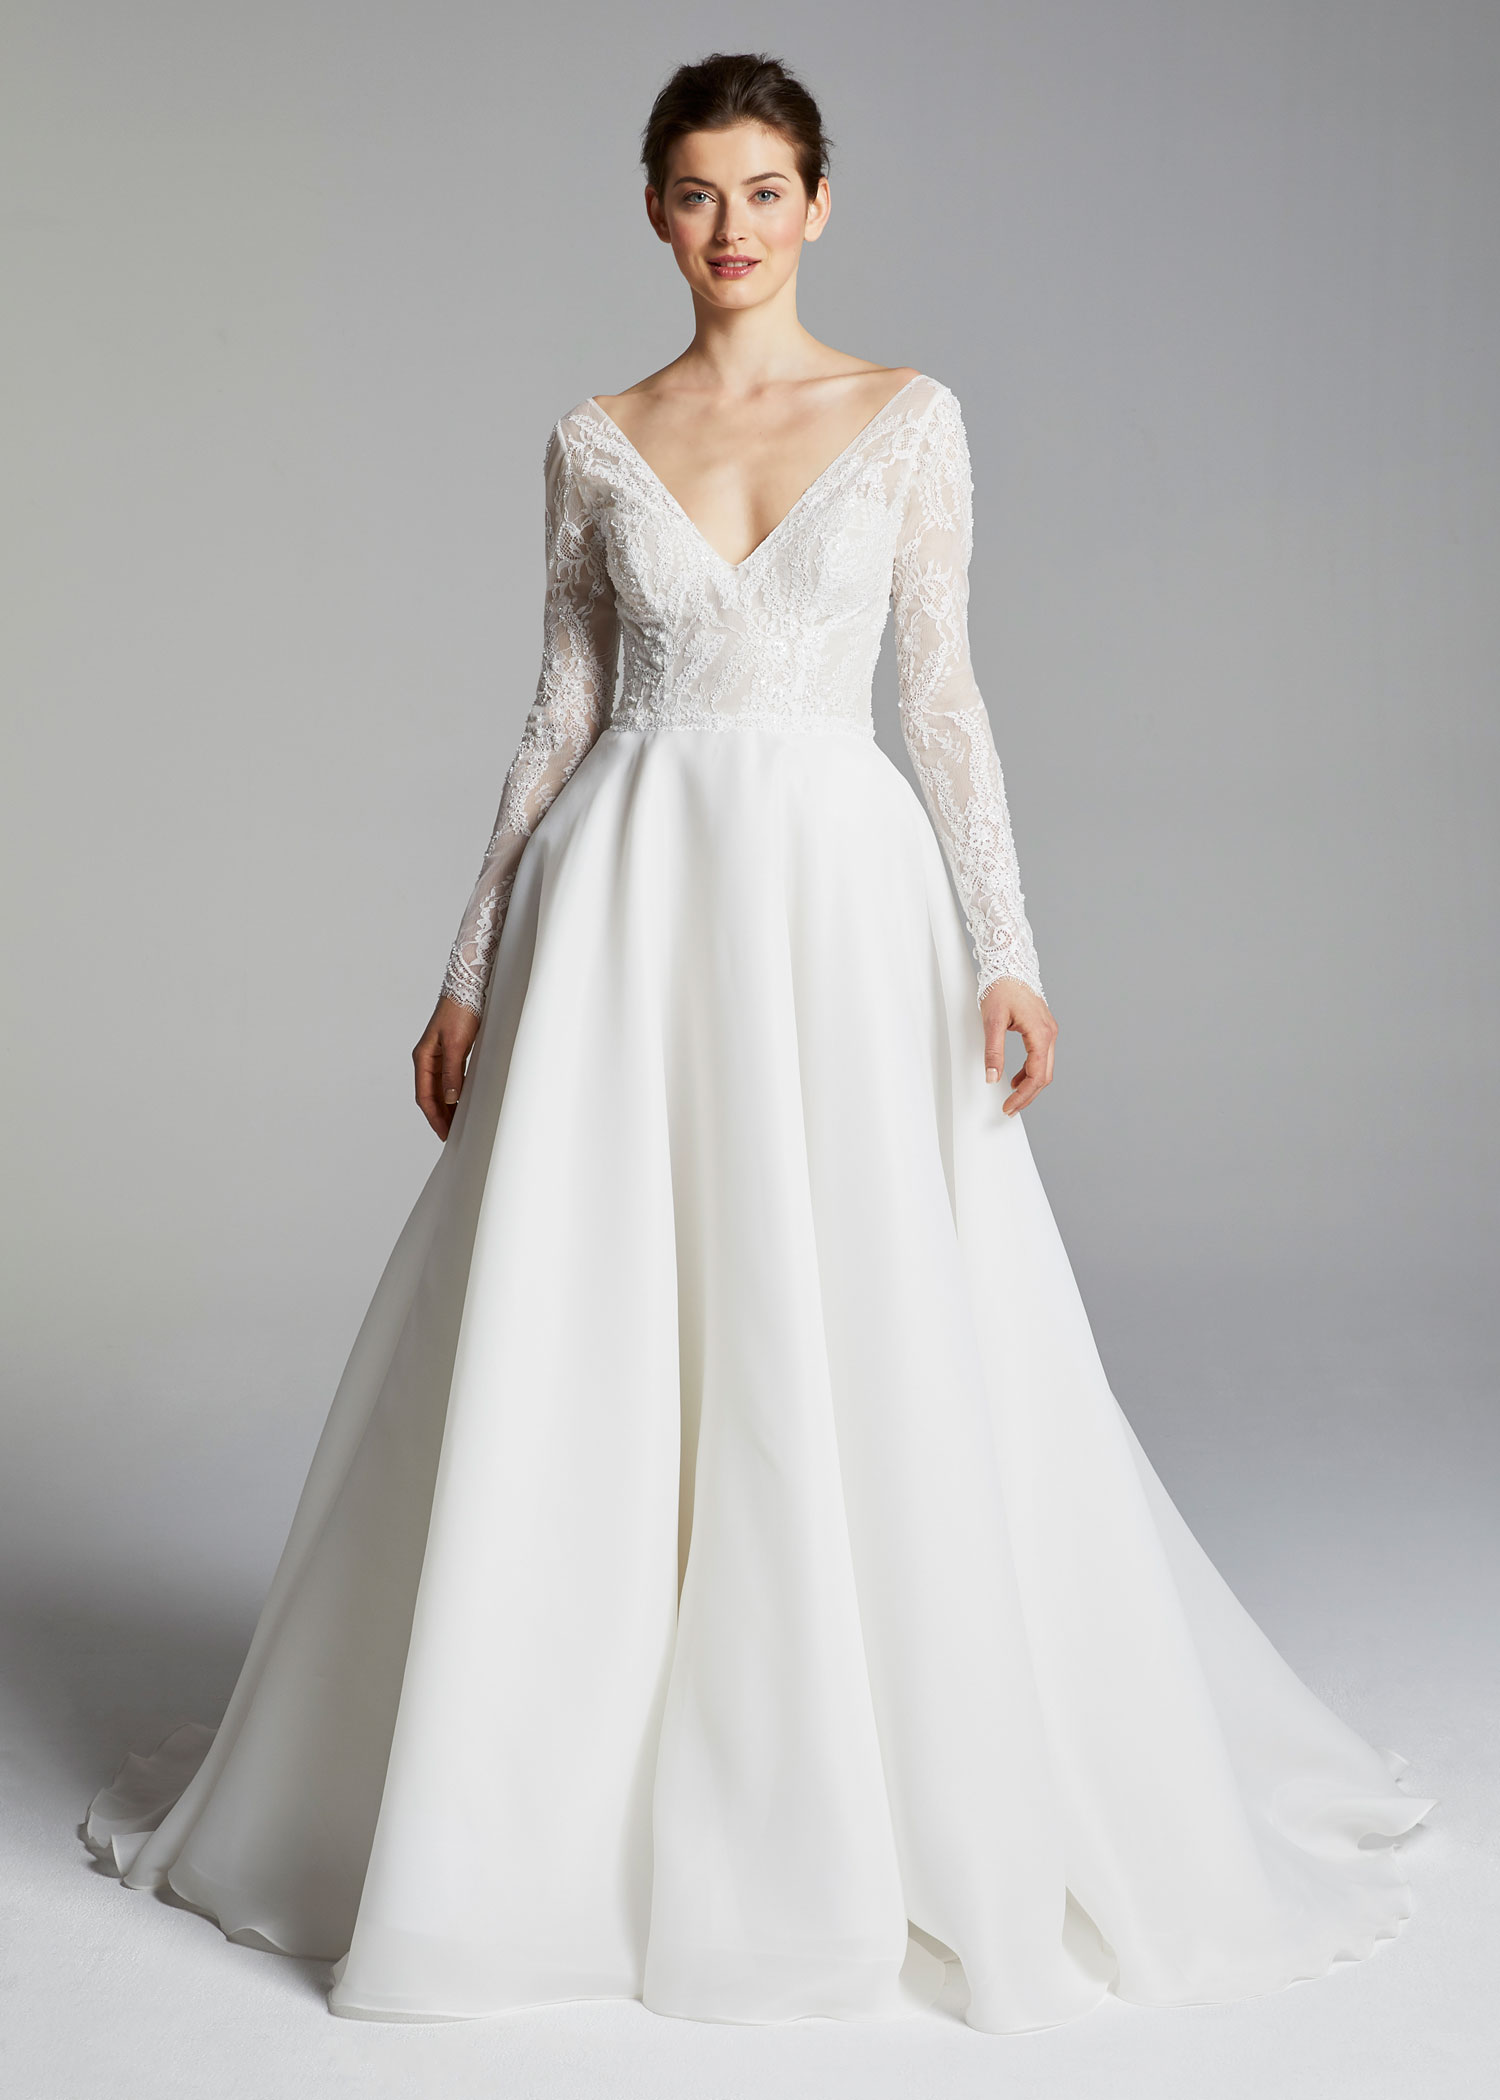 Anne Barge v neck long sleeve a line ball gown royal wedding dress inspiration